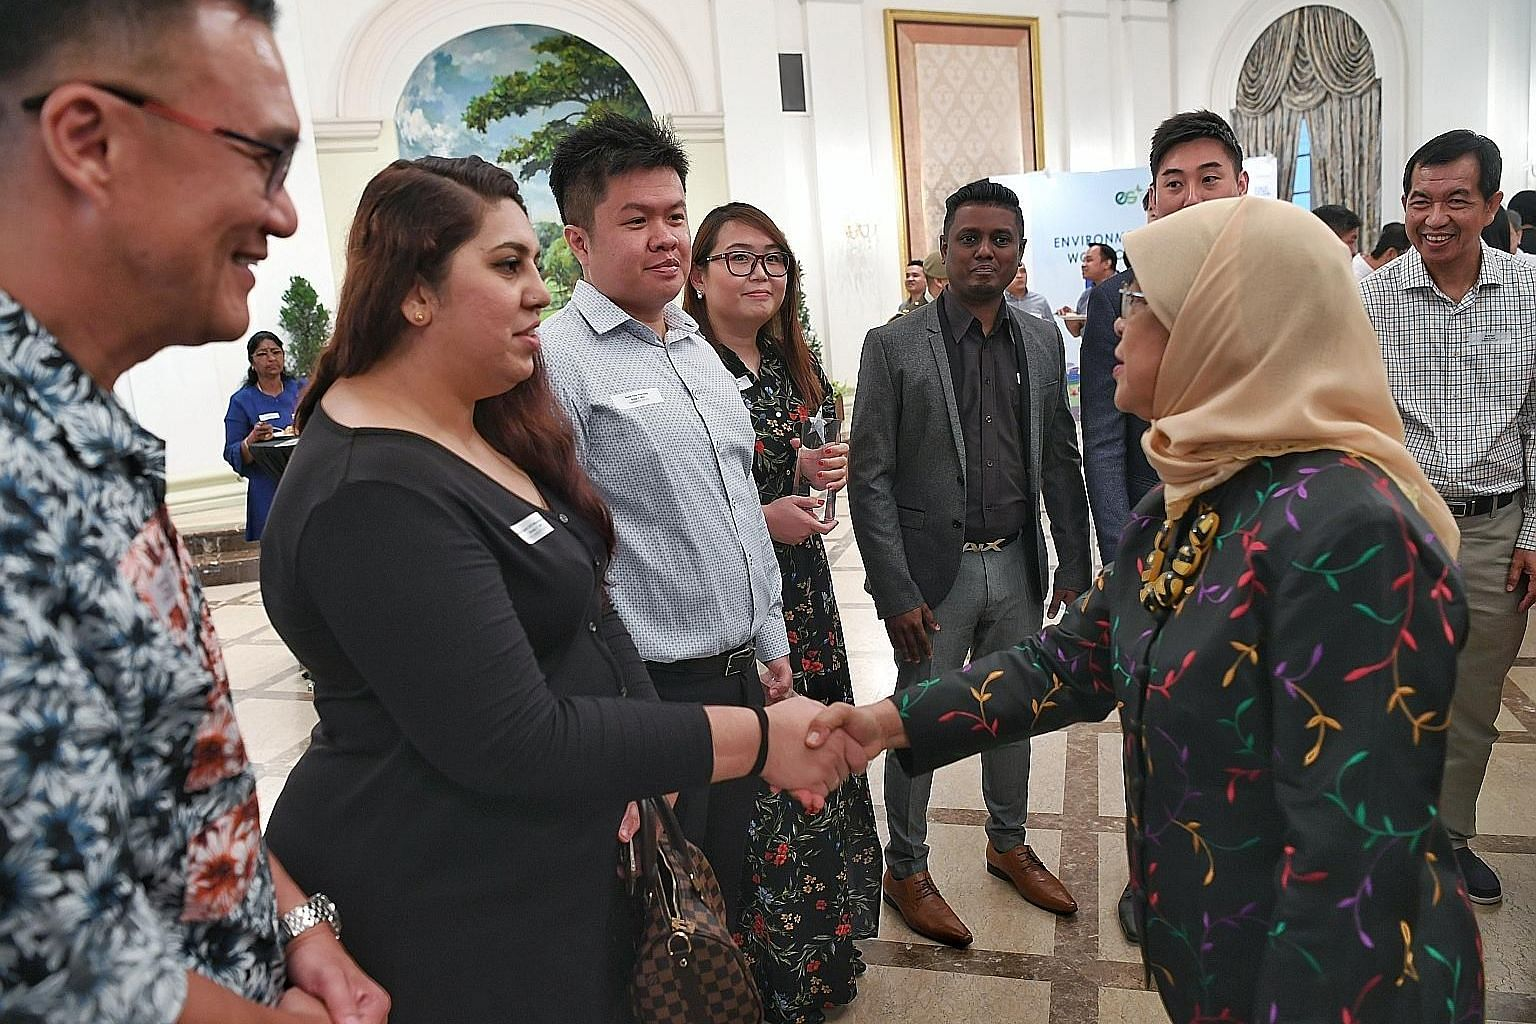 President Halimah Yacob meeting guests and award winners - including Ms Regina Cheah (fourth from left), who received an Environmental Services Star Award - at the Istana yesterday.